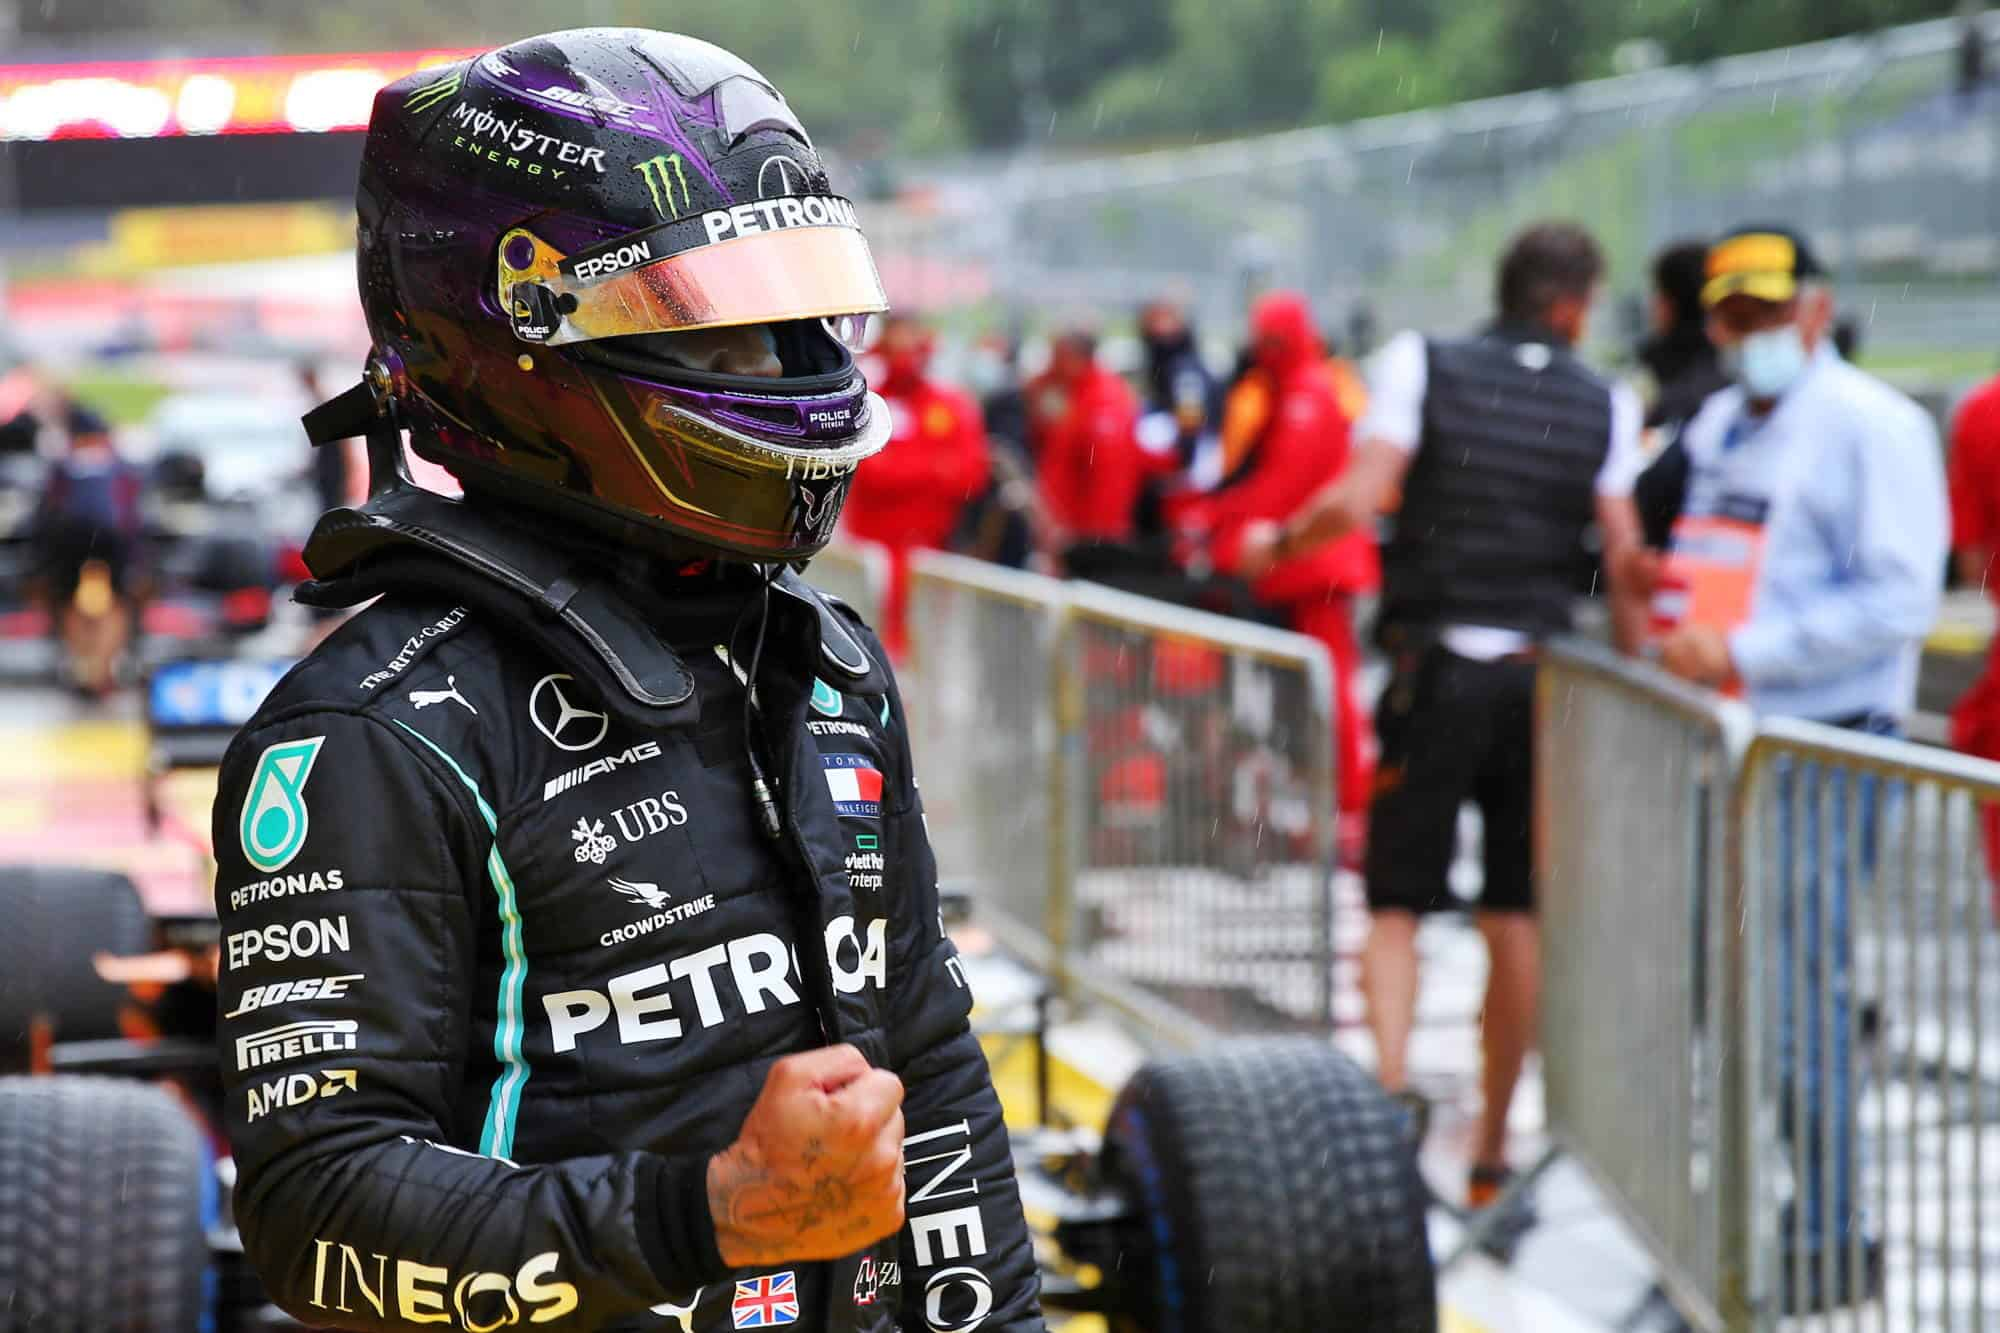 Hamilton Mercedes Styrian GP F1 2020 after qualifying out of the car Photo Daimler